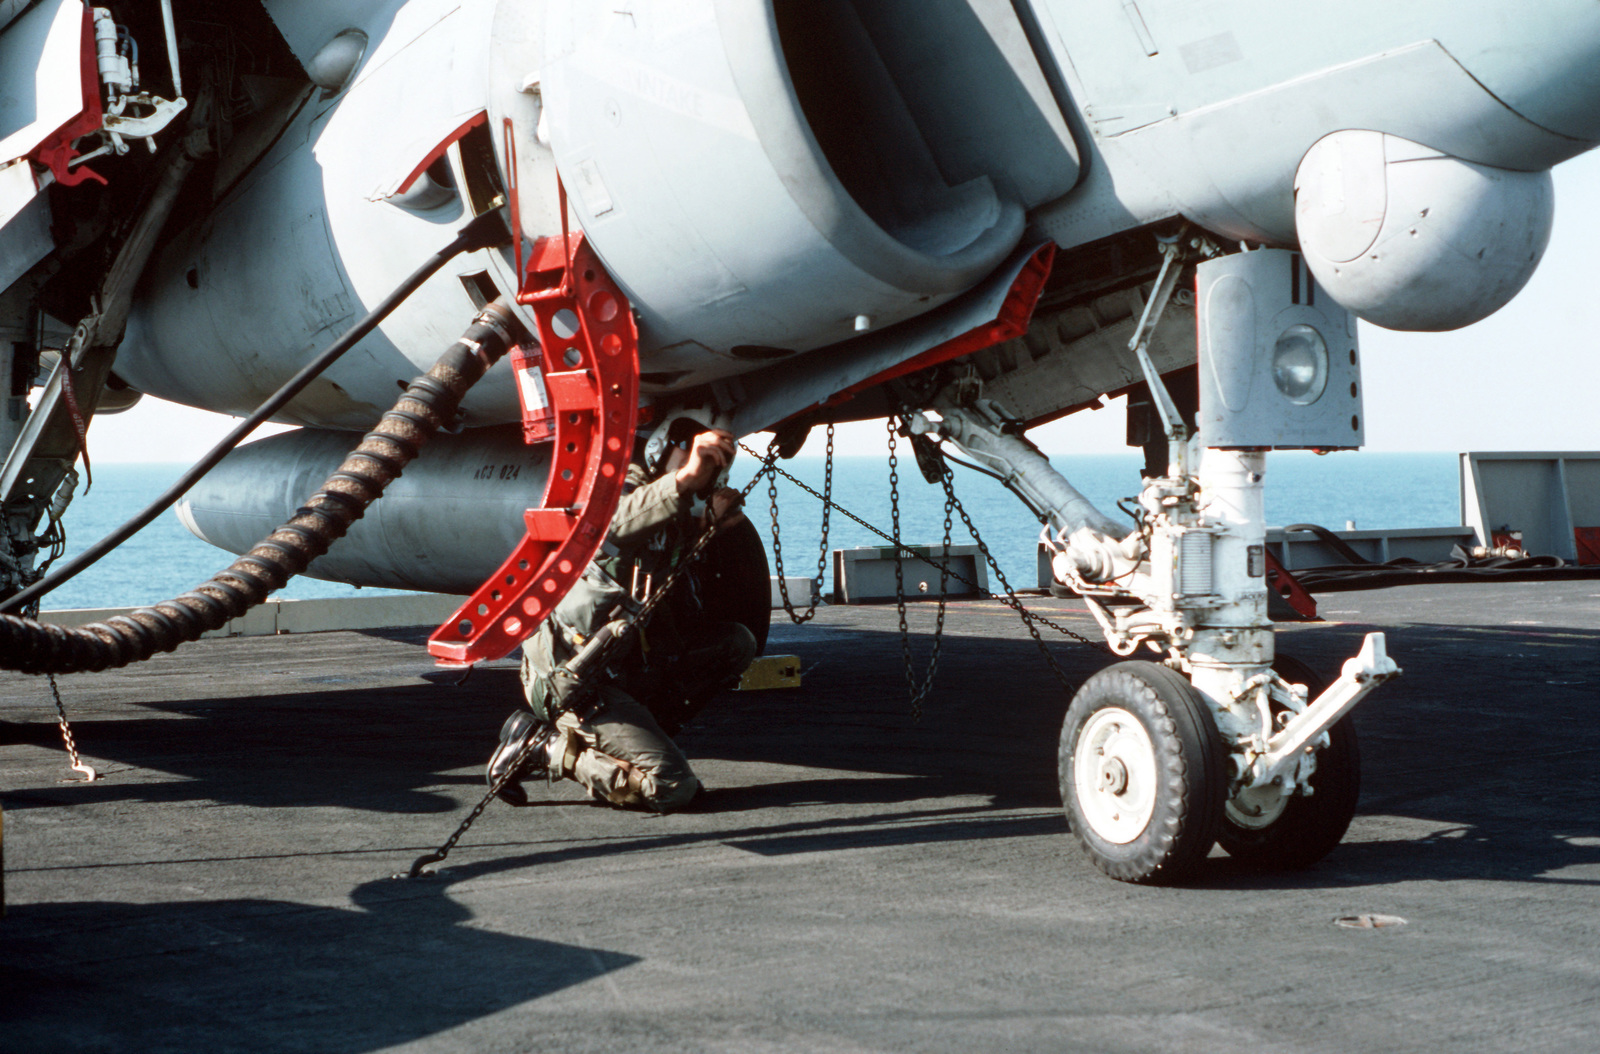 The pilot of a Strike-Fighter Squadron 111 (VFA-111) A-6E intruder aircraft performs a preflight inspection of his aircraft on the flight deck aboard the nuclear-powered aircraft carrier USS DWIGHT D. EISENHOWER (CVN 69)